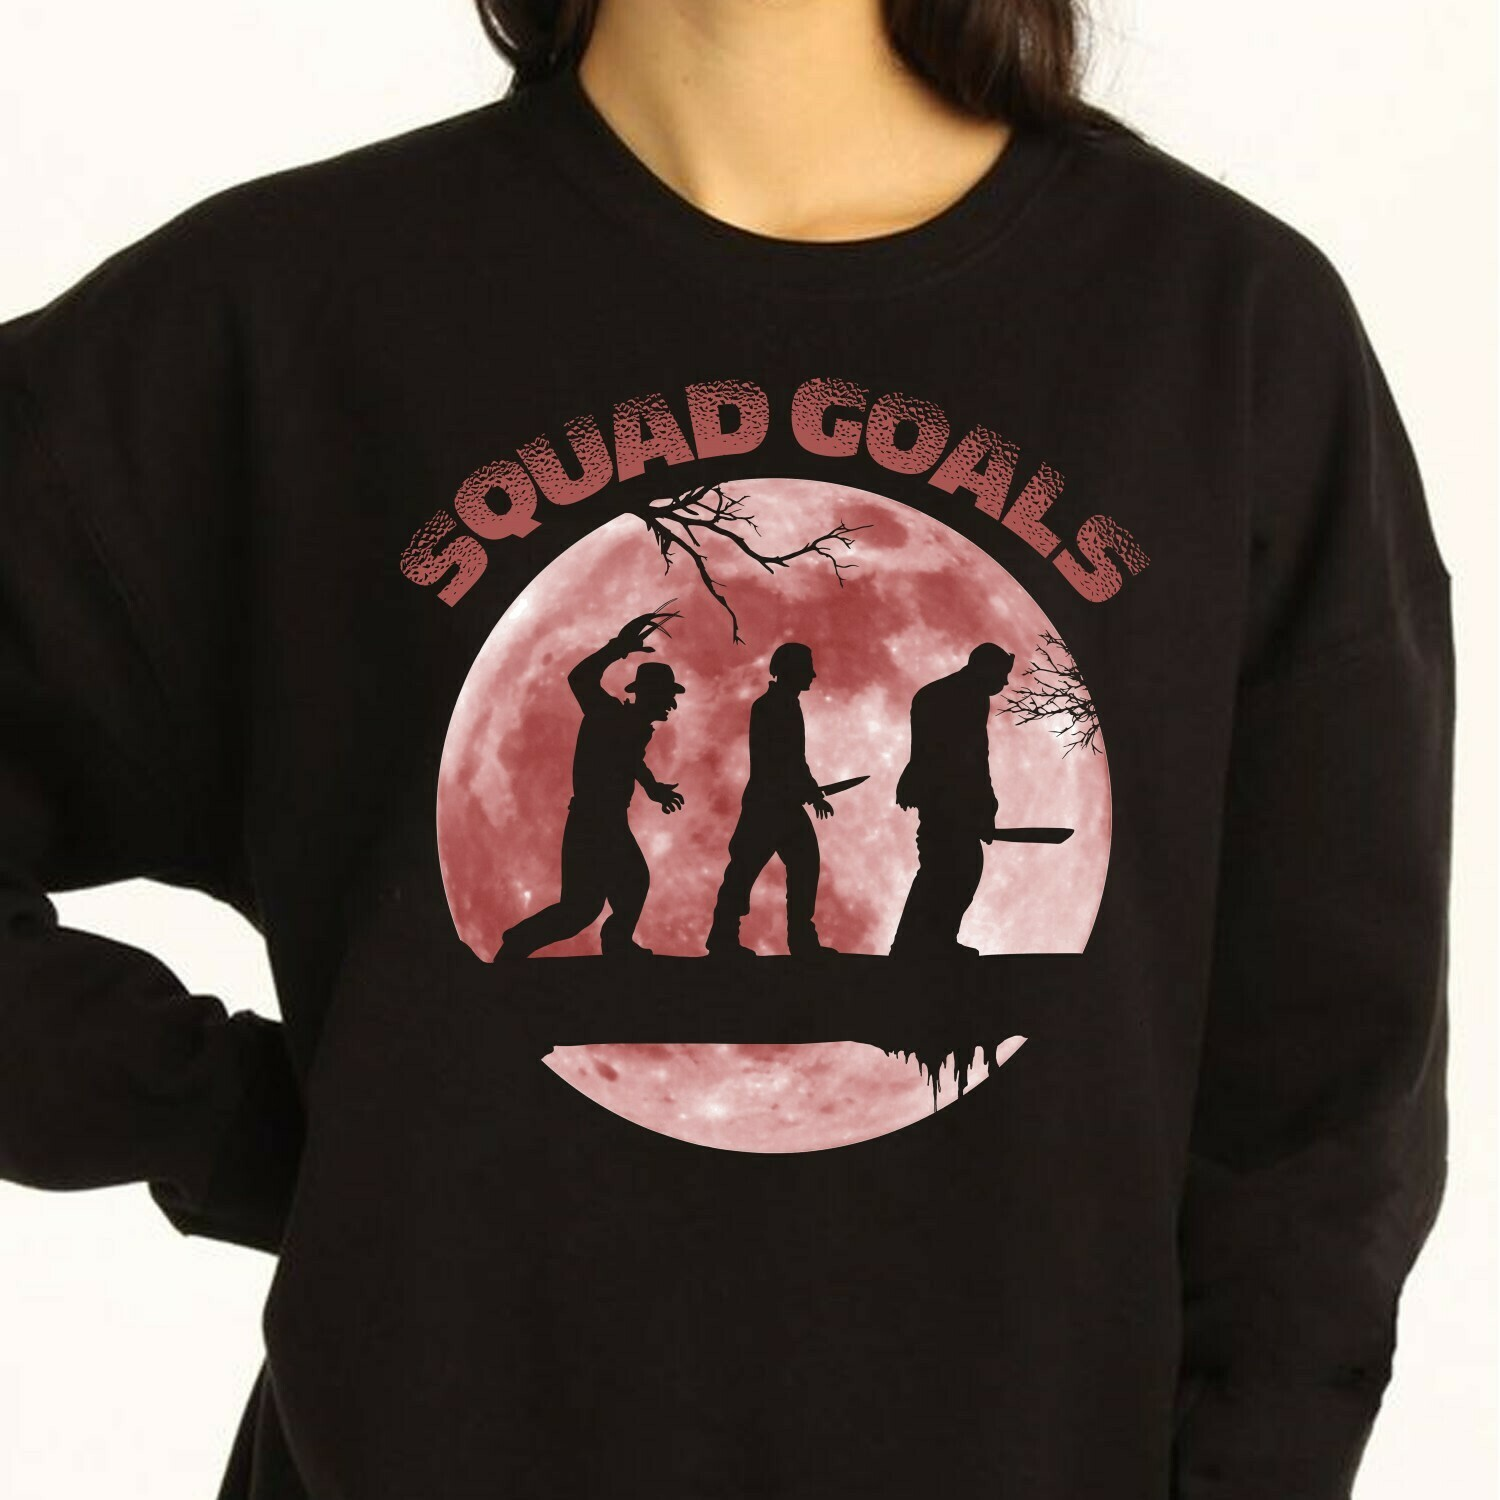 Horror Character Squad Goals In The Moonlight Friday The 13th Gifts For Fan Movie Villains Halloween Horror Movie Mashup Squad T-Shirt Long Sleeve Sweatshirt Hoodie Jolly Family Gifts